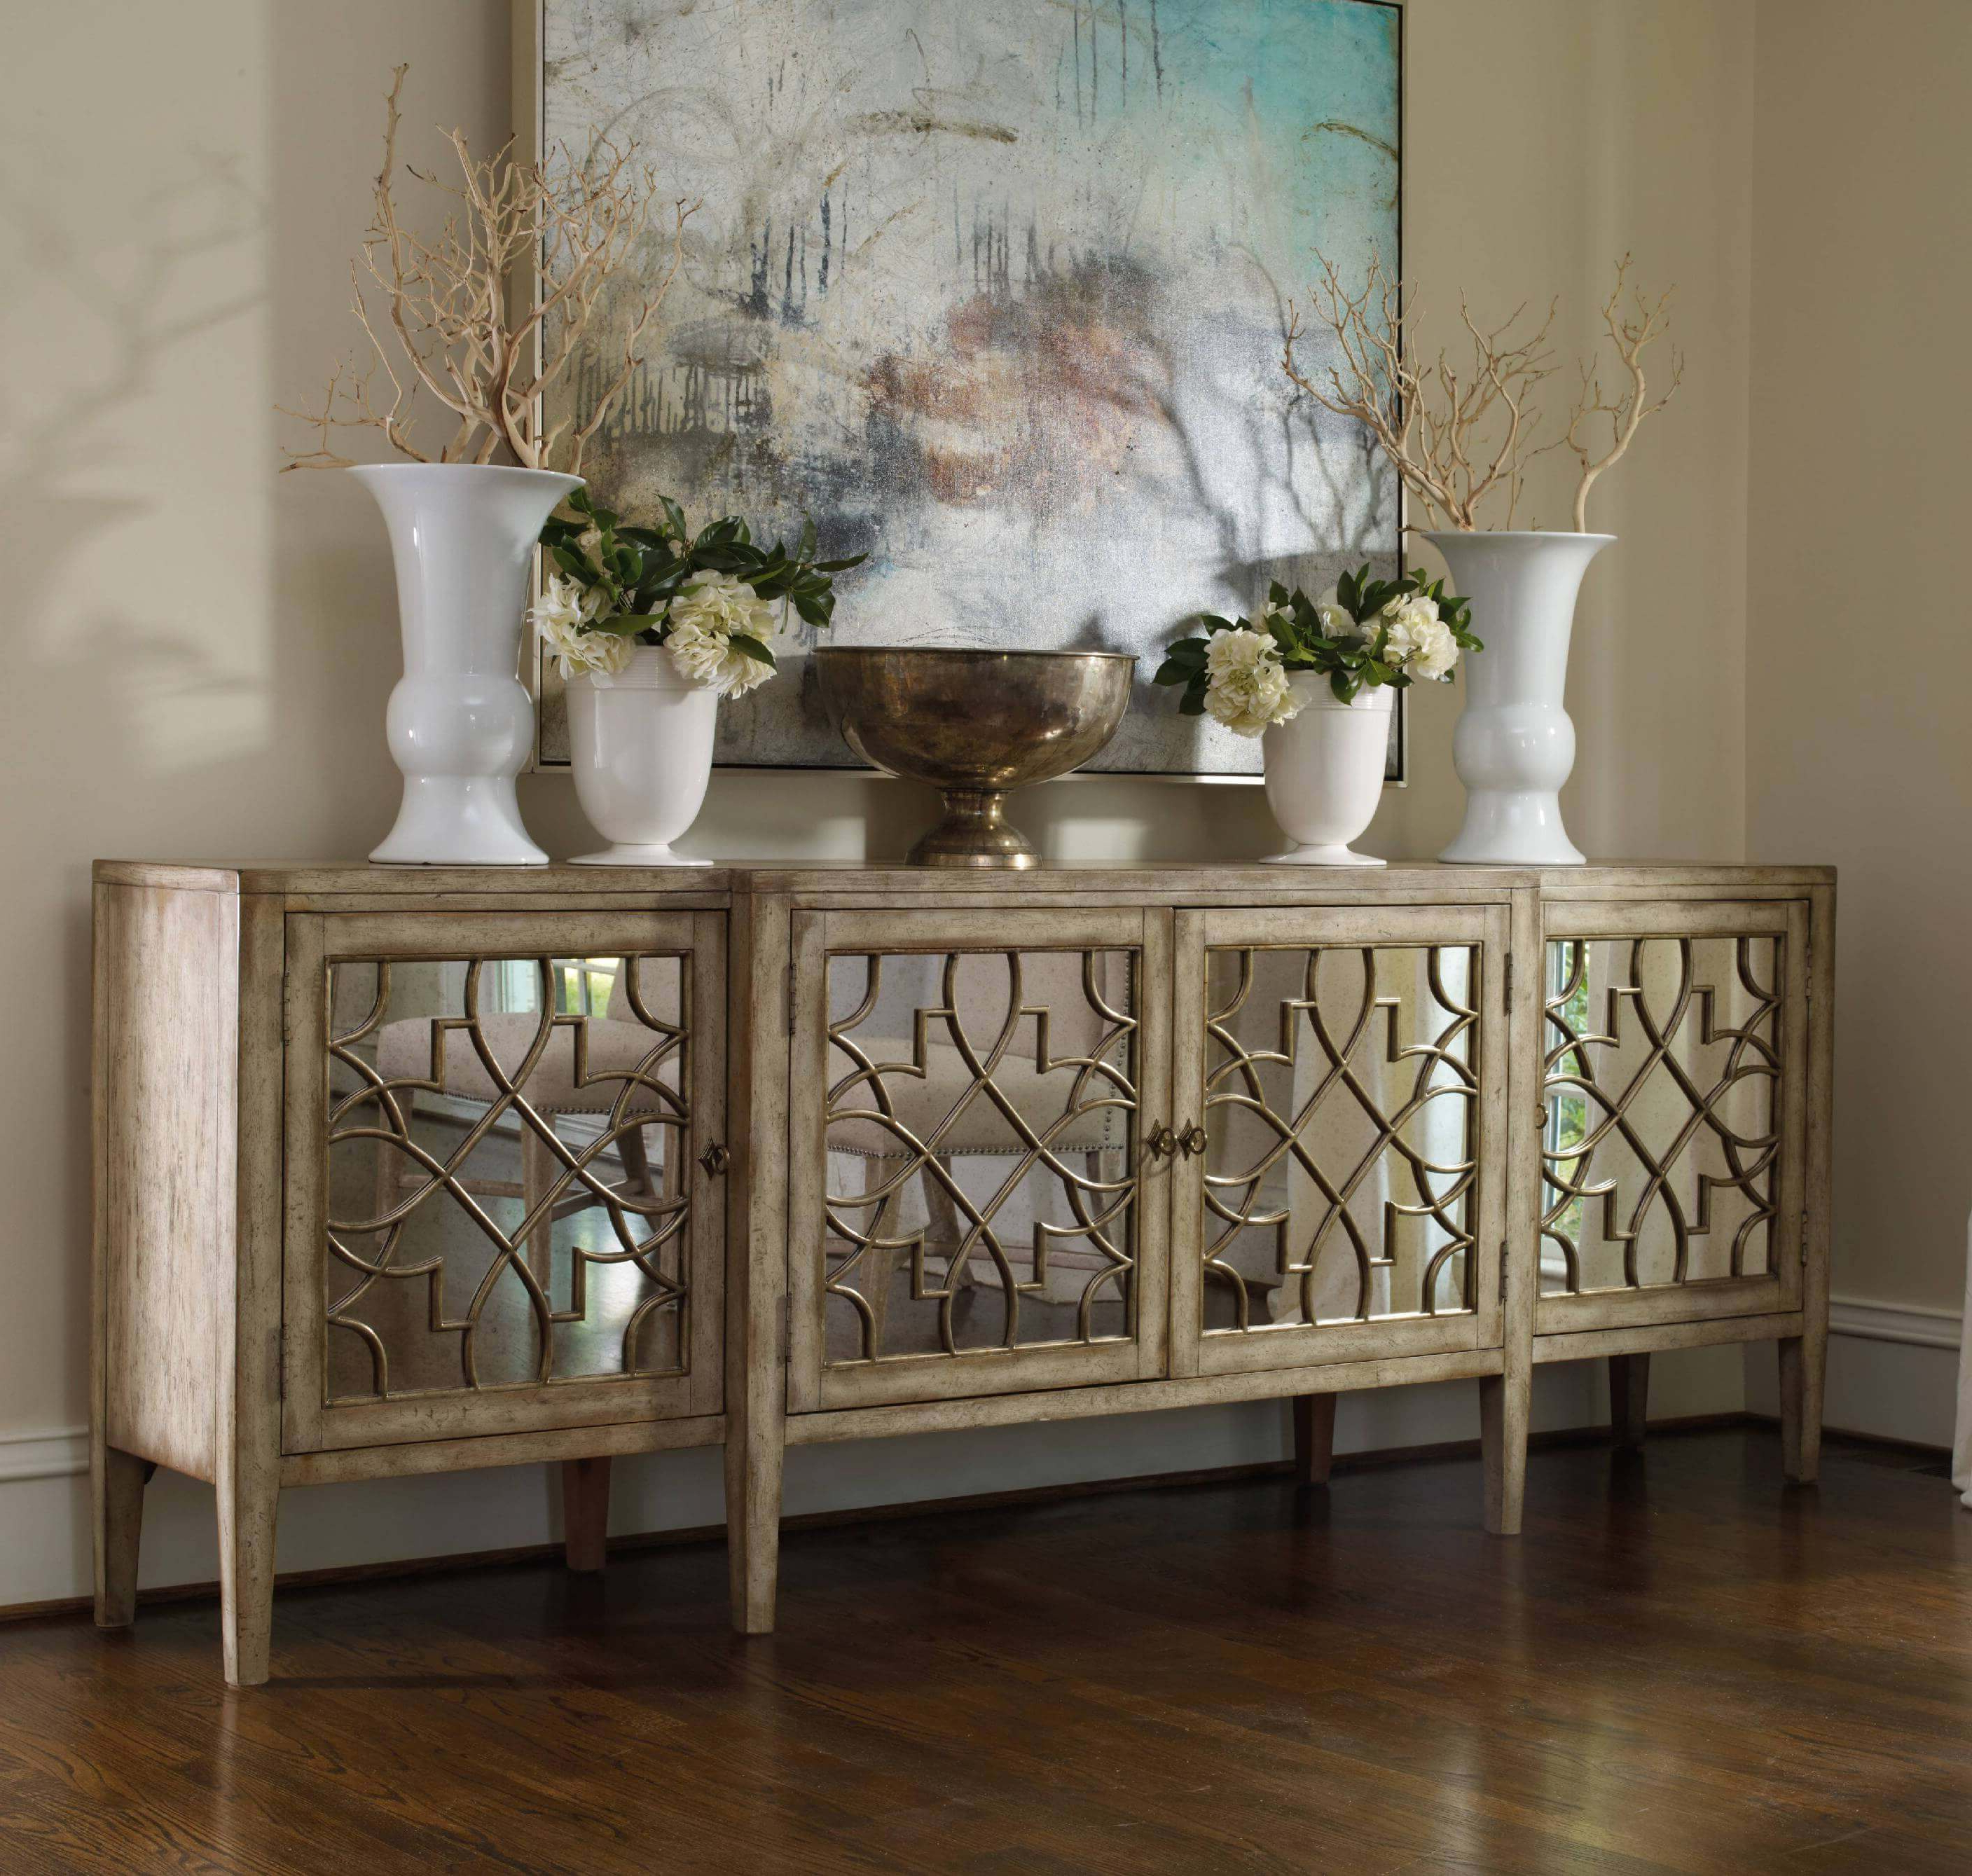 Natural Wood Mirrored Media Console Tables For Best And Newest 30 Best Rustic Glam Decoration Ideas And Designs For  (View 12 of 20)